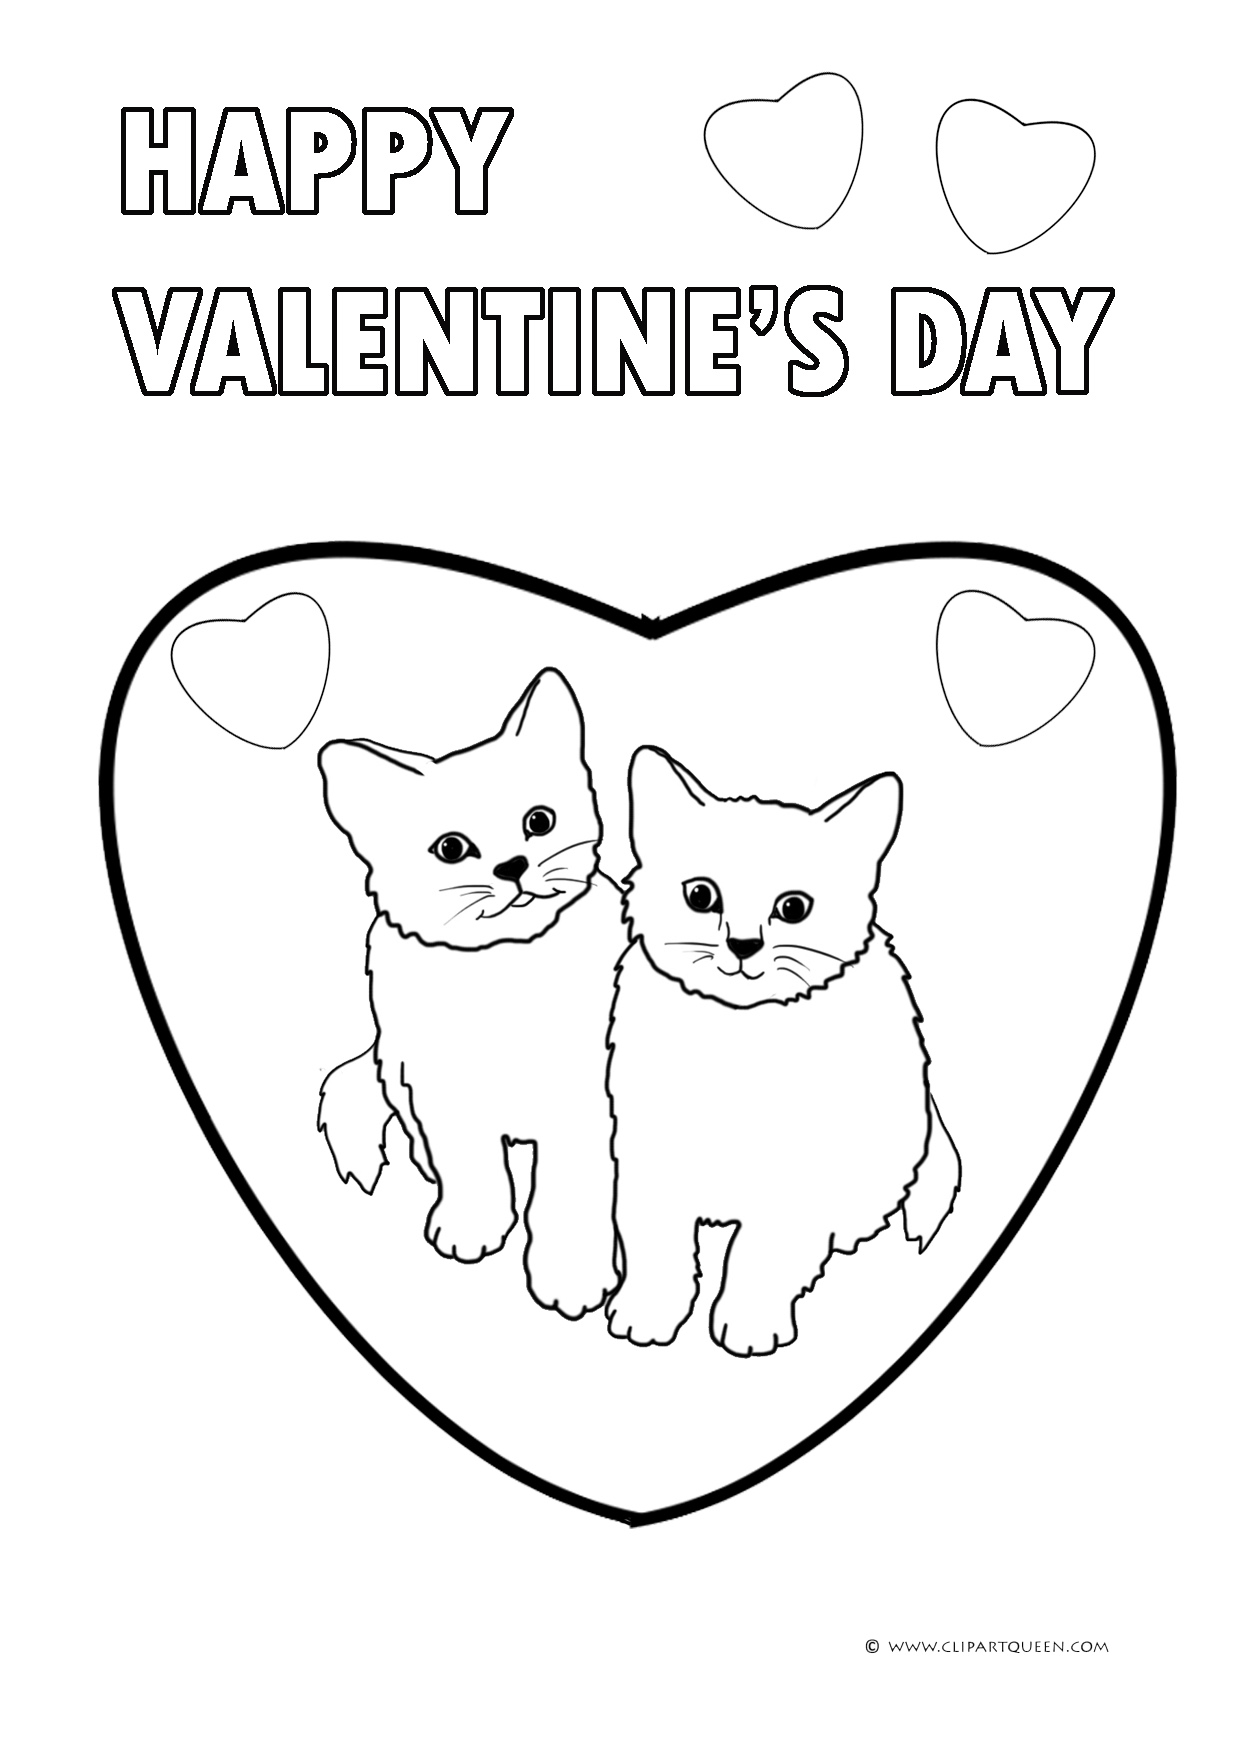 Valentine\'s Day Drawing at GetDrawings.com | Free for personal use ...